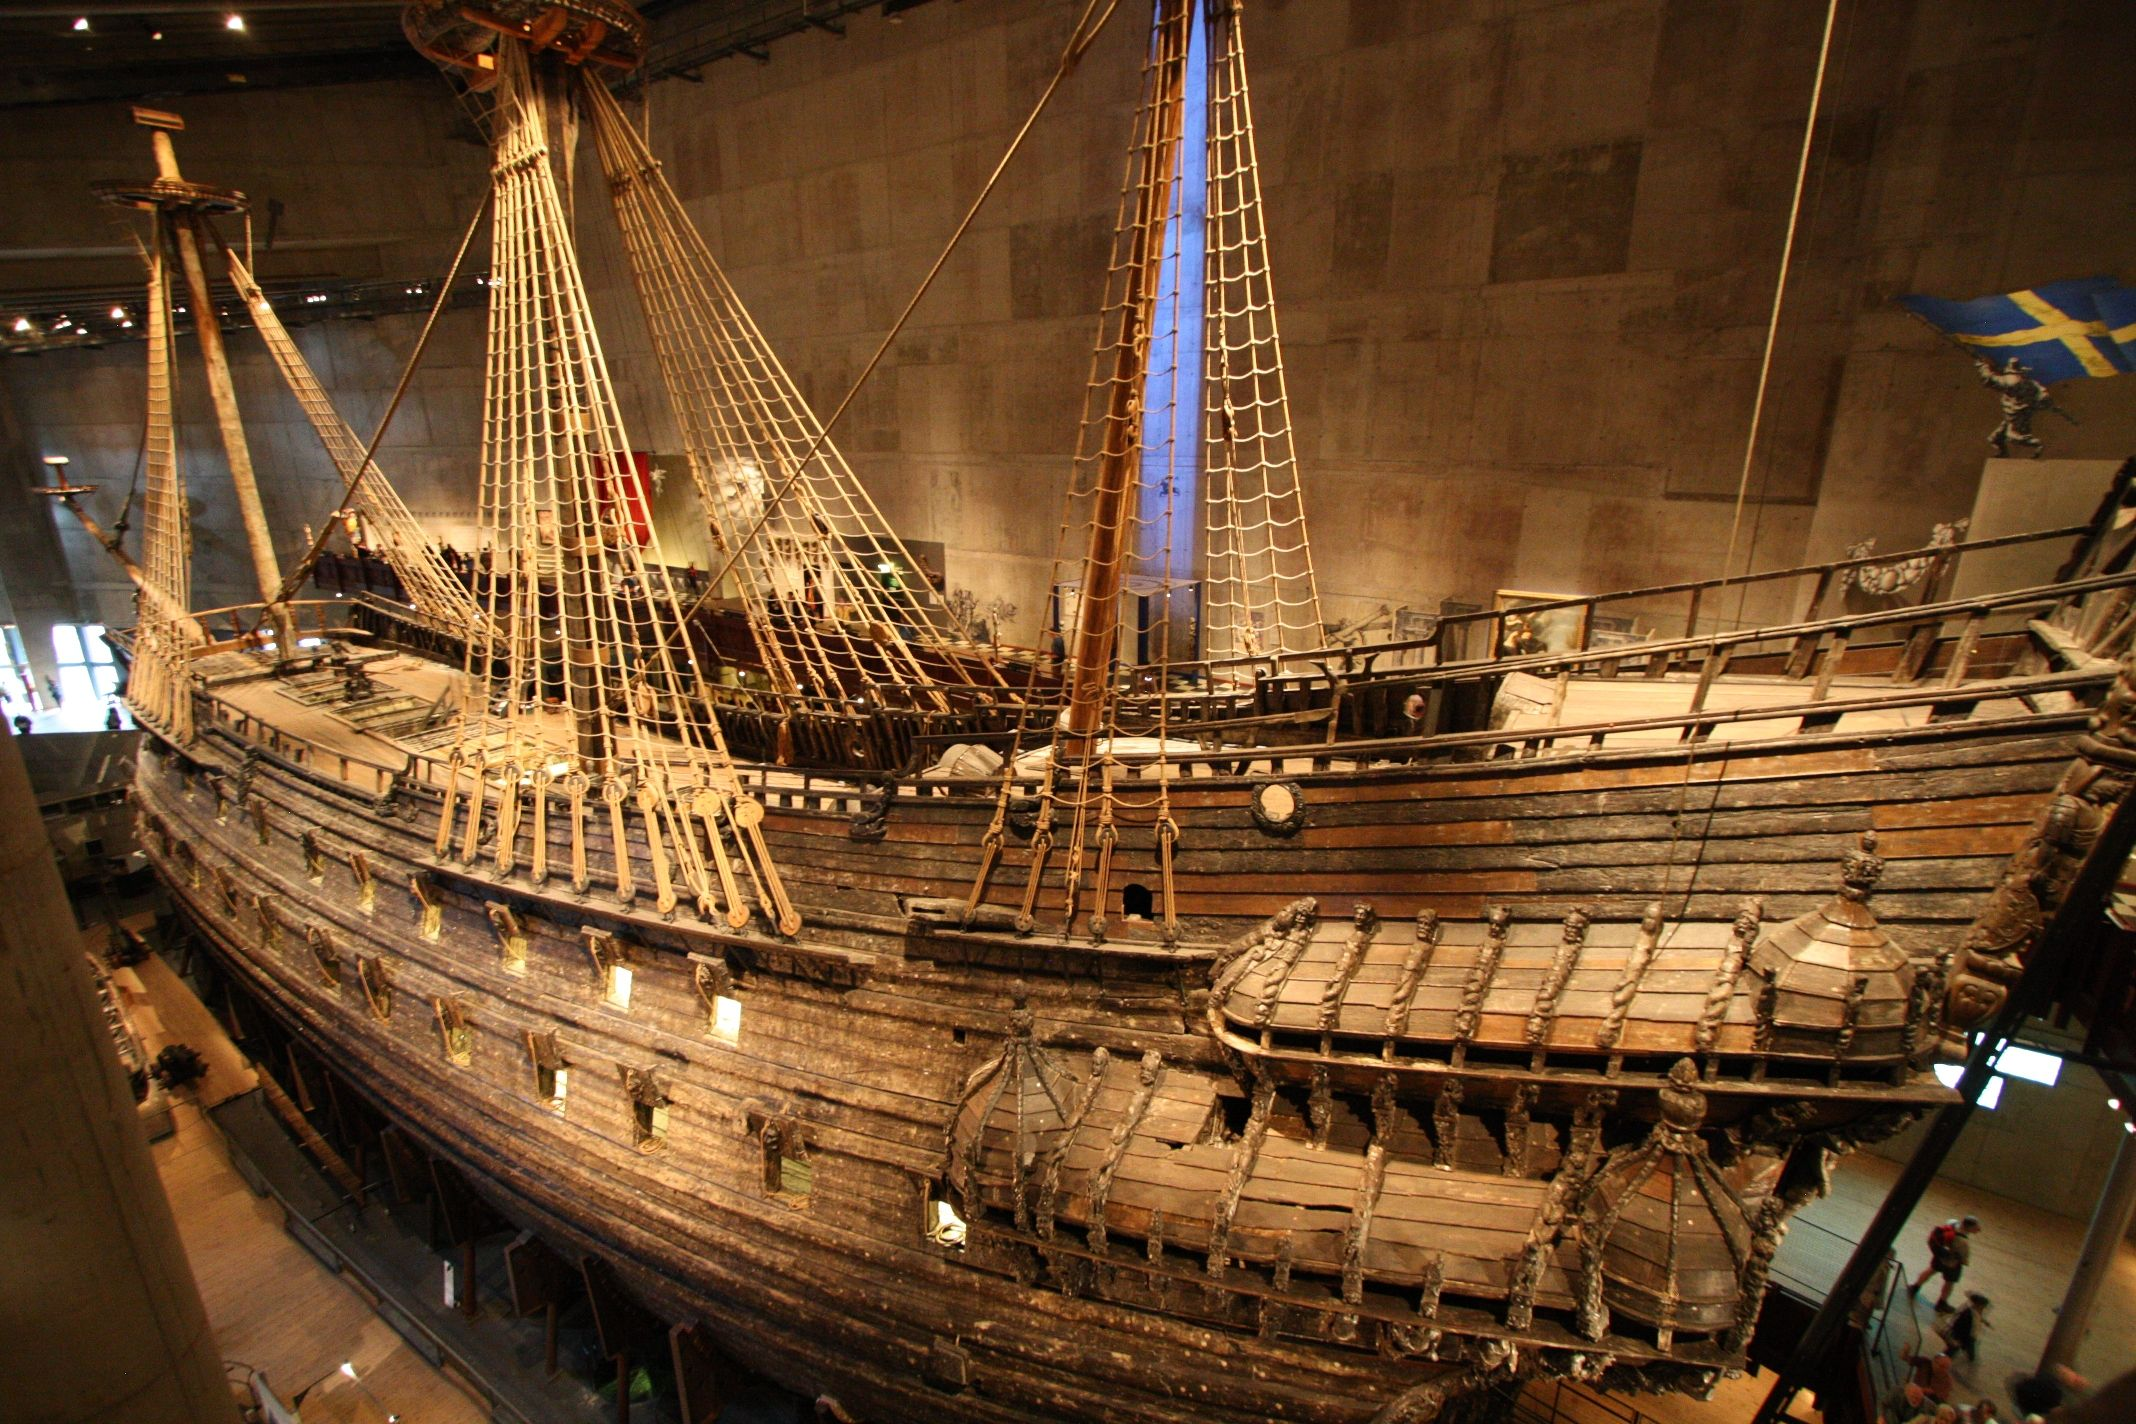 Vasa Museum in Sweden